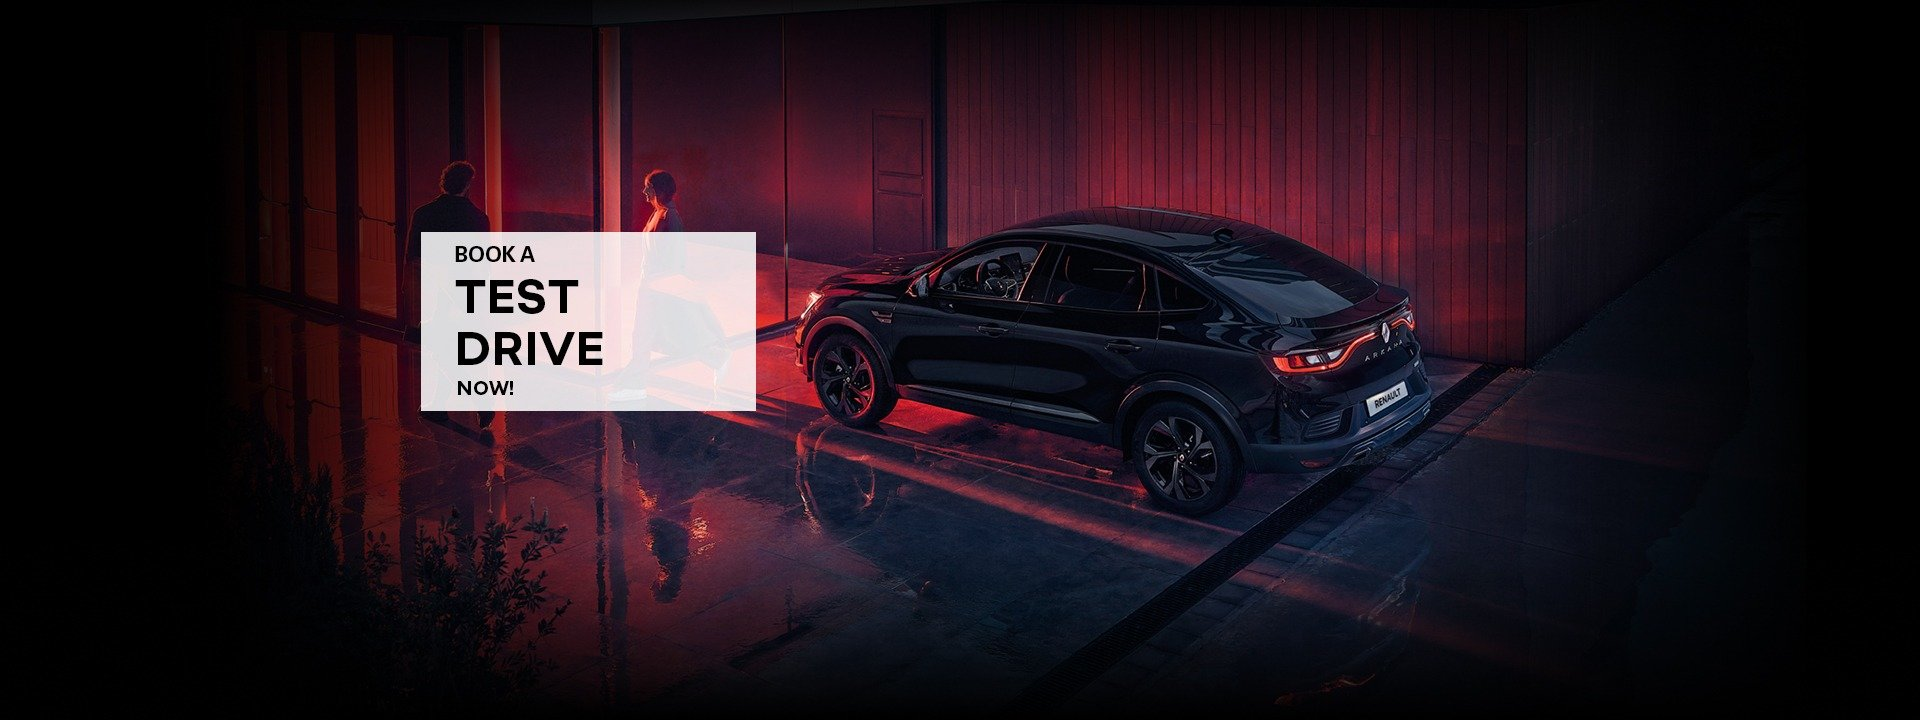 RENAULT-BOOK-A-TEST-DRIVE